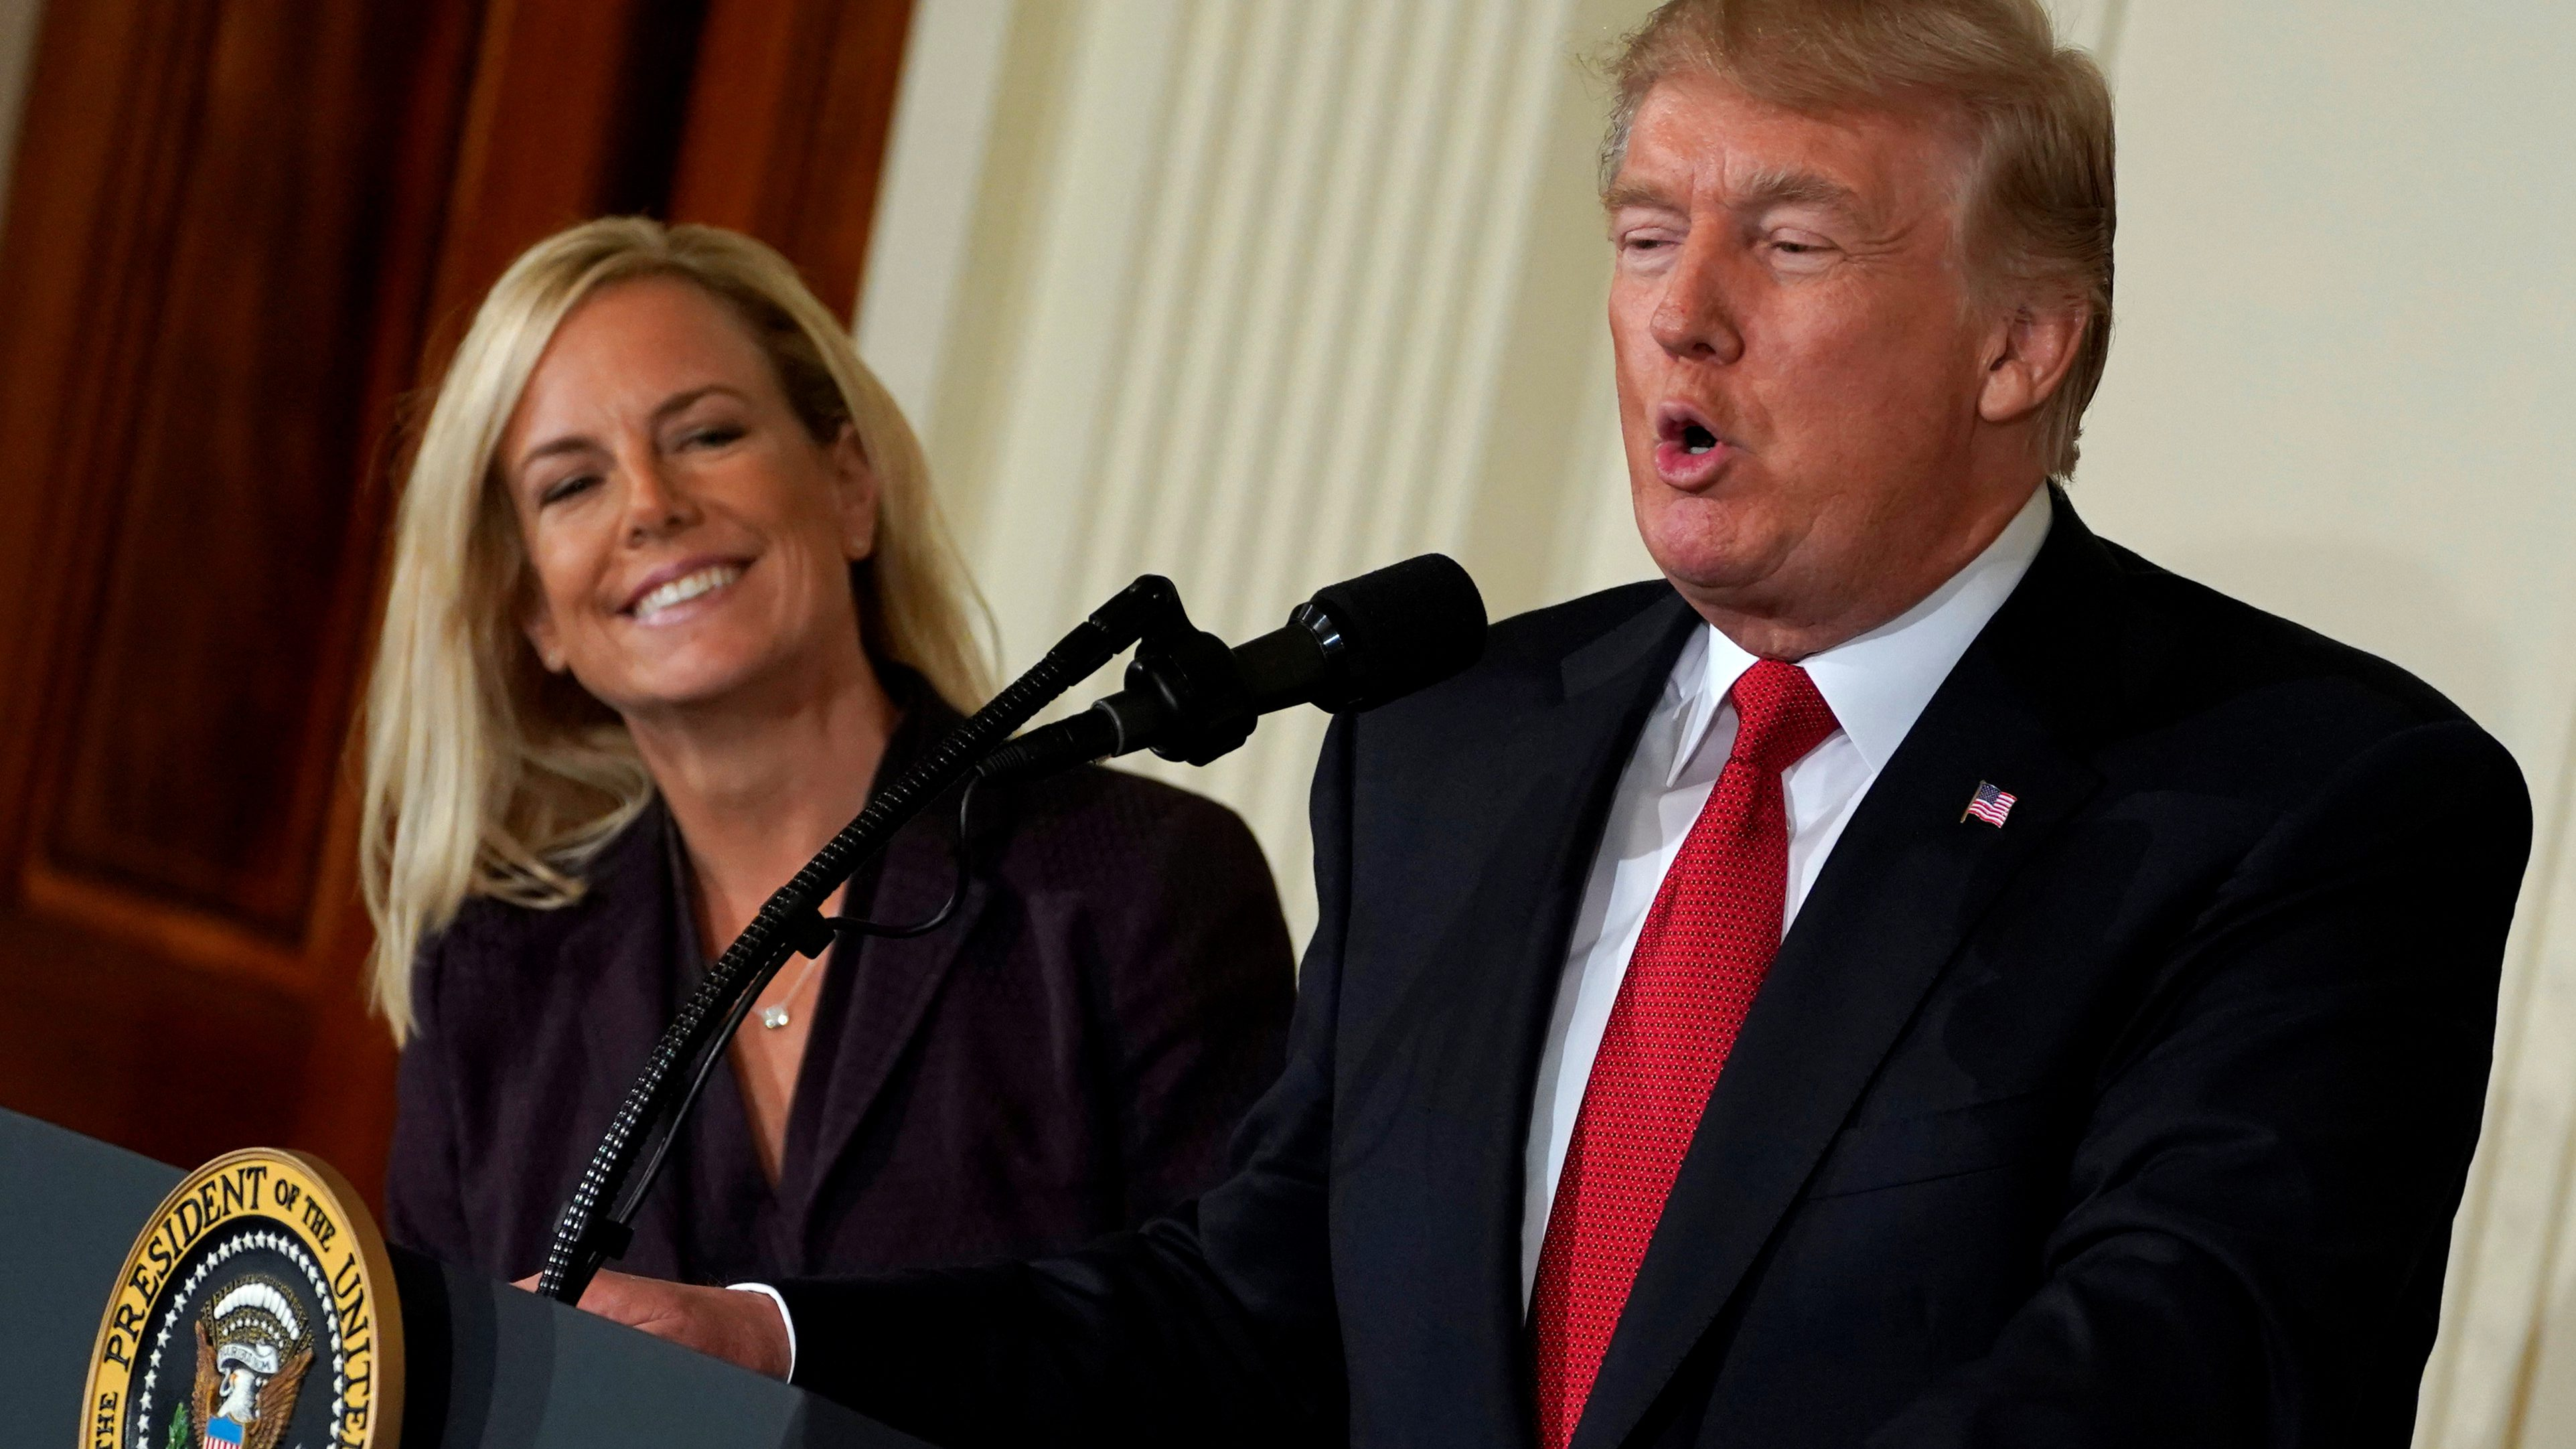 U.S. President Donald Trump introduces Secretary of Homeland Security nominee Kirstjen Nielsen at the White House in Washington, U.S., October 12, 2017. REUTERS/Yuri Gripas - RC1A0215A220